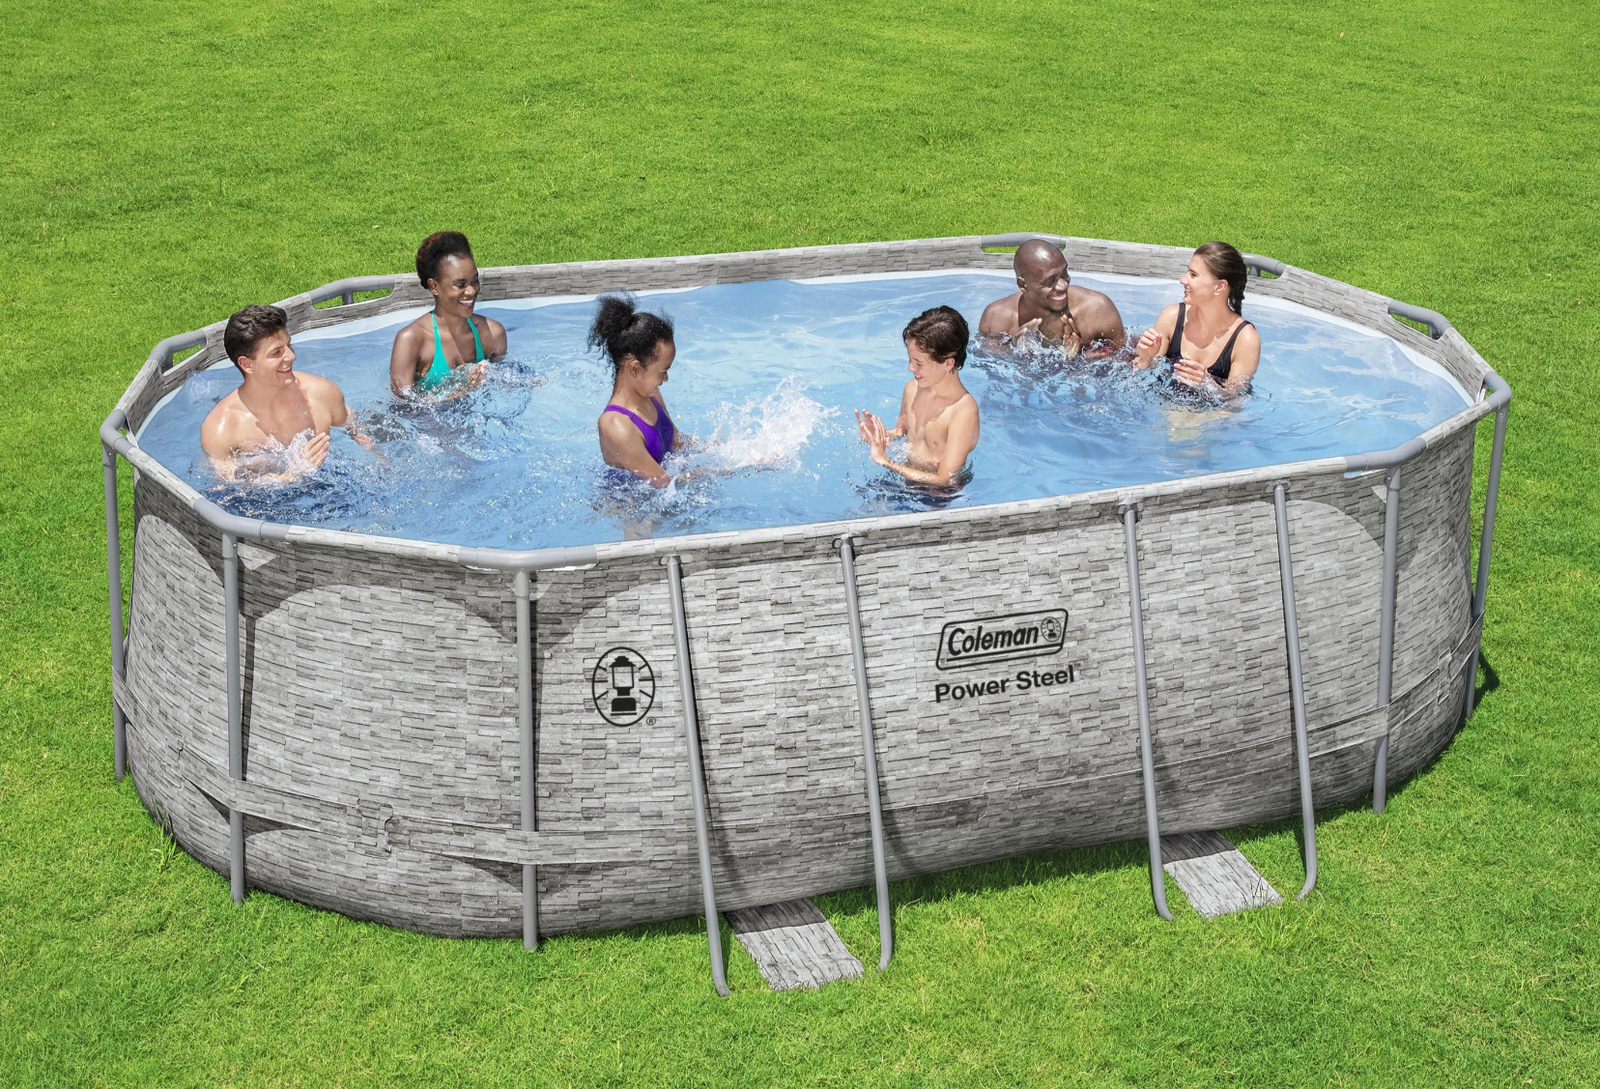 "Coleman Power Steel 16' x 10' x 48"" Oval Above Ground Pool Set - Ready to Ship"